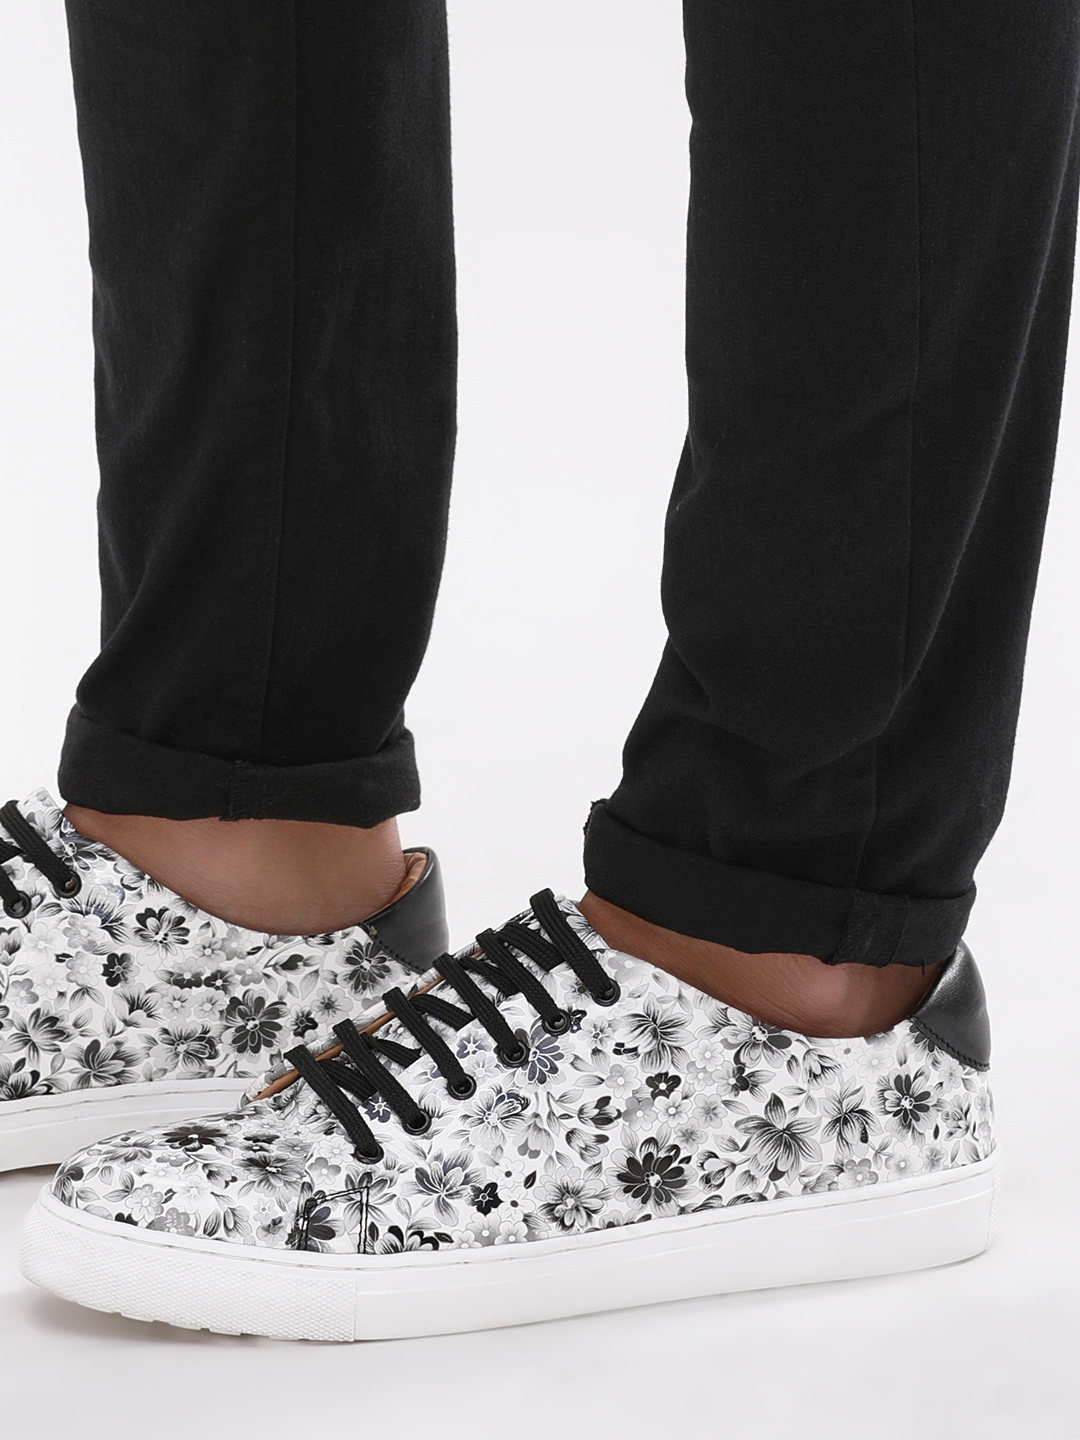 Marcello & Ferri Black/White Floral Print Sneakers 1